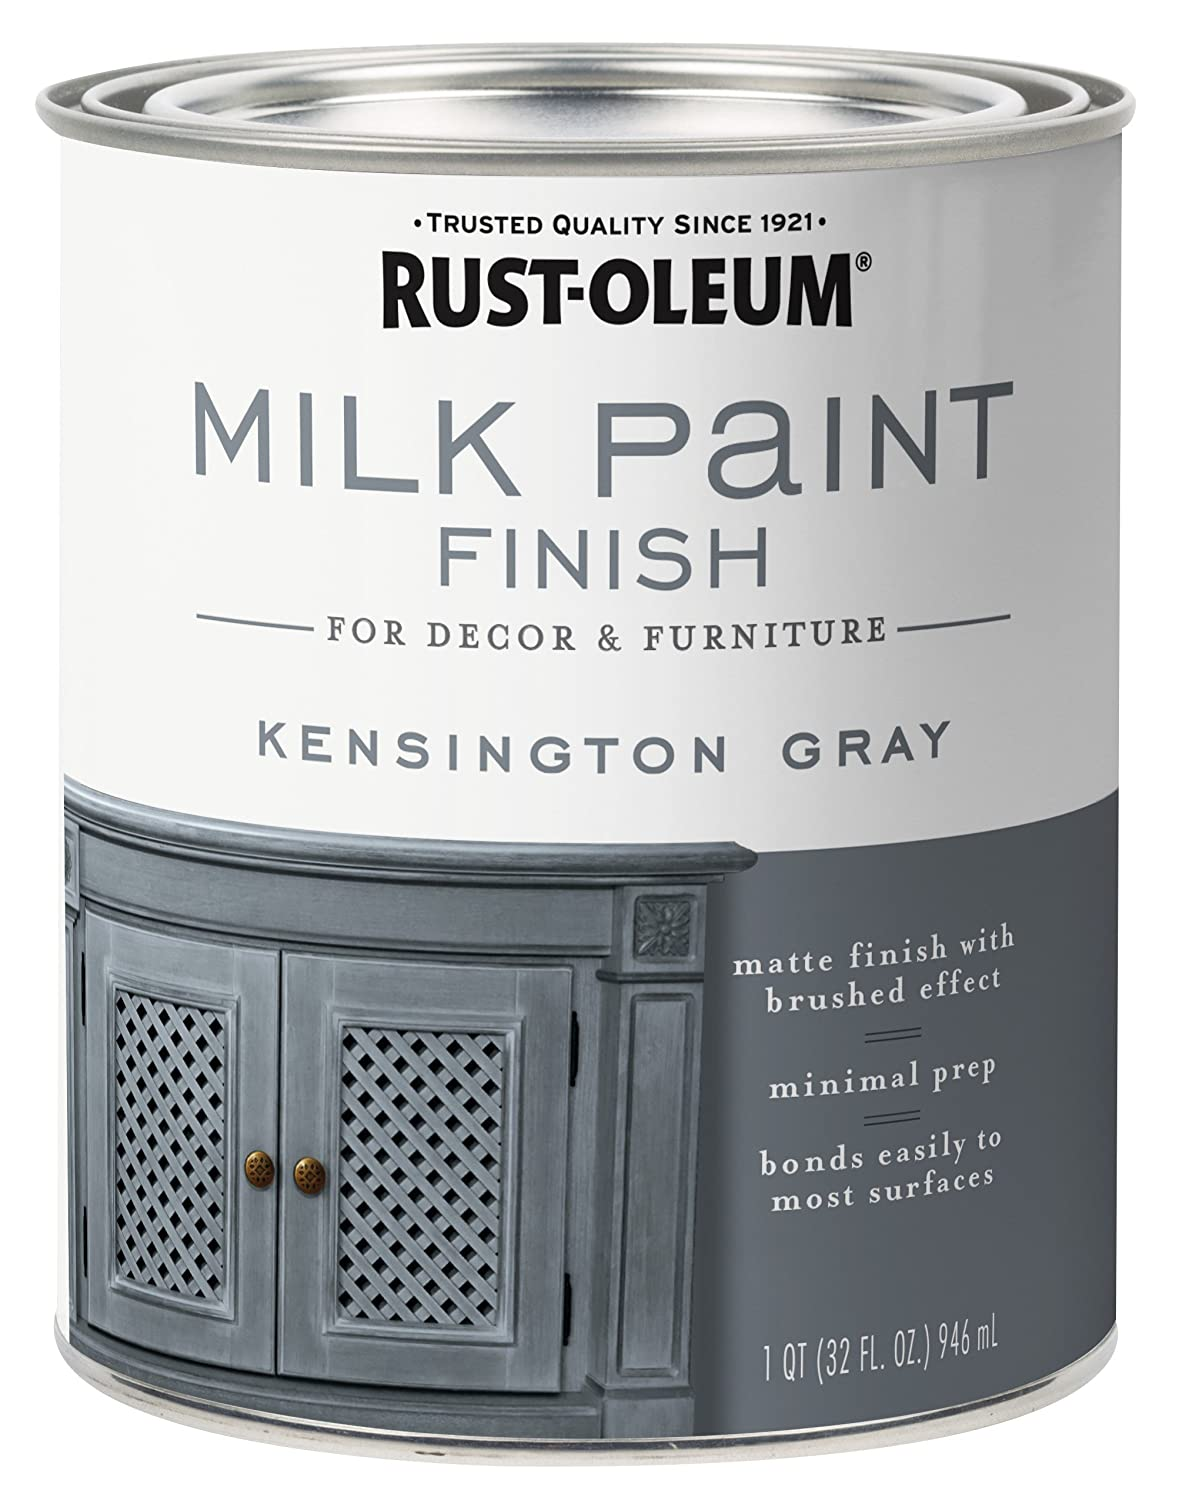 Rust-Oleum 331053 Finish Milk Paint, Quart, Kensington Gray